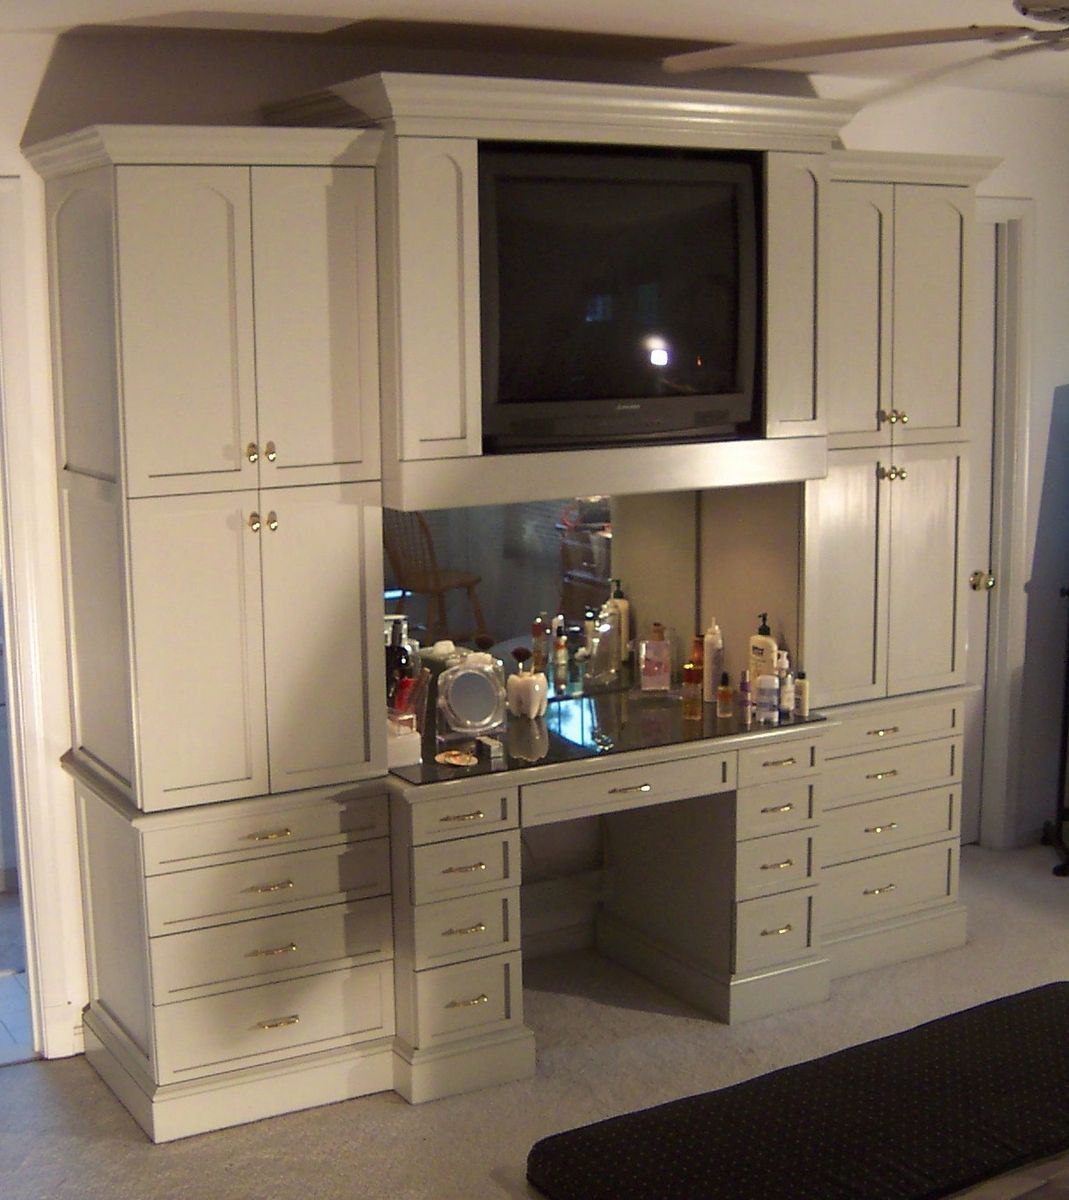 Bedroom Cabinet And Makeup Table Built In I Want Sans Tv In The Vanity For The Home